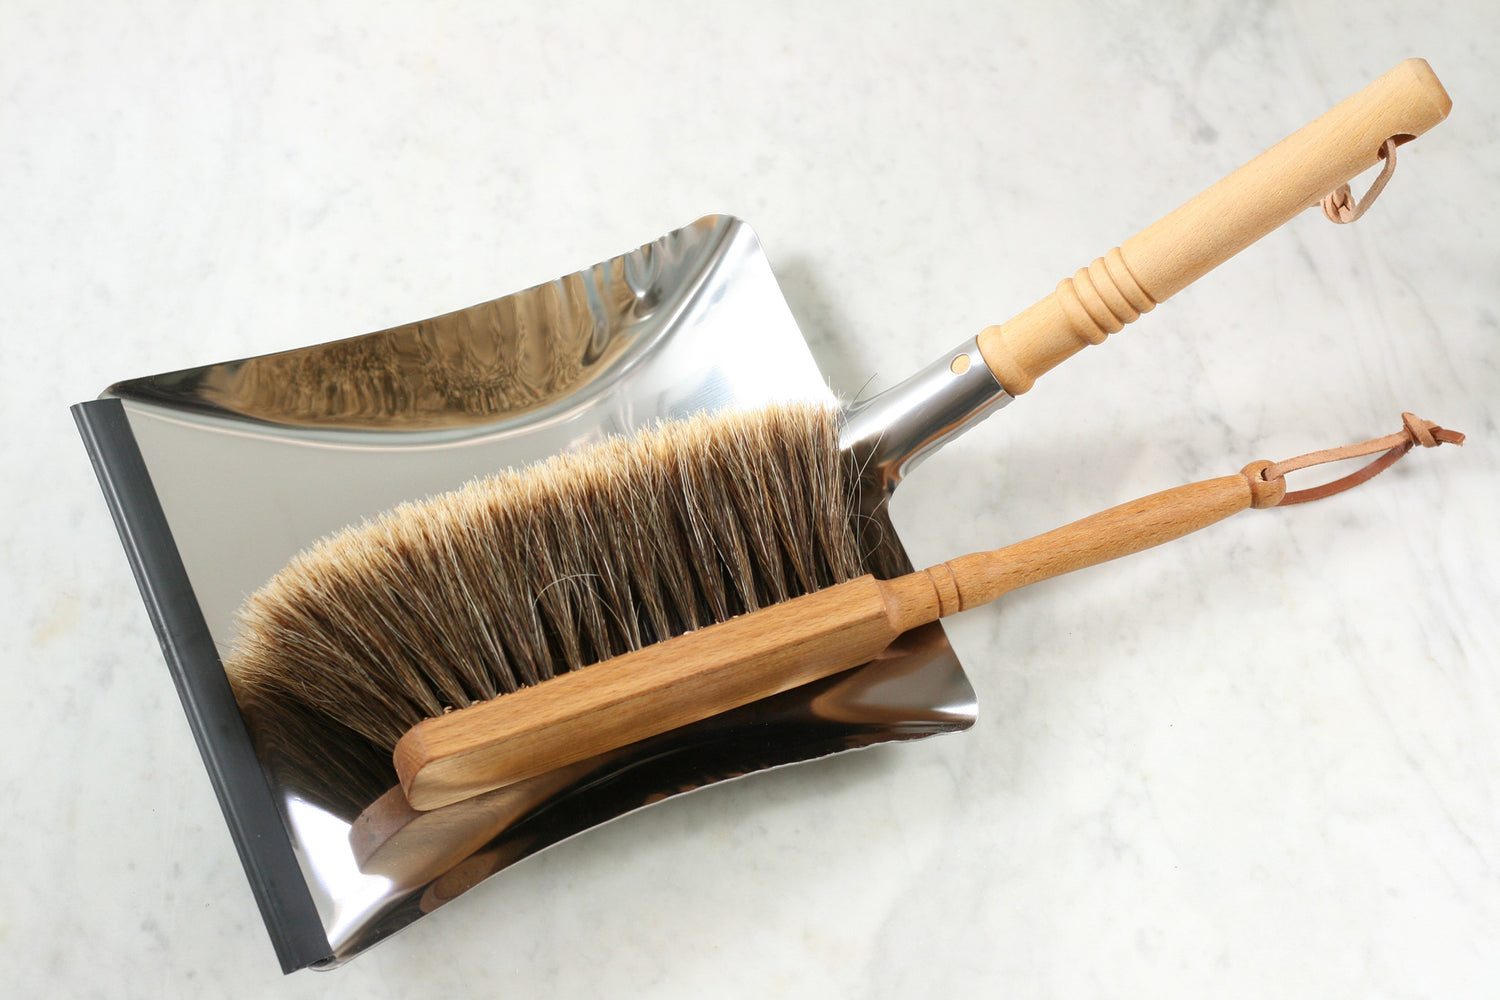 A German-style stainless steel dustpan with oiled beechwood handle from Burstenhaus Redecker.